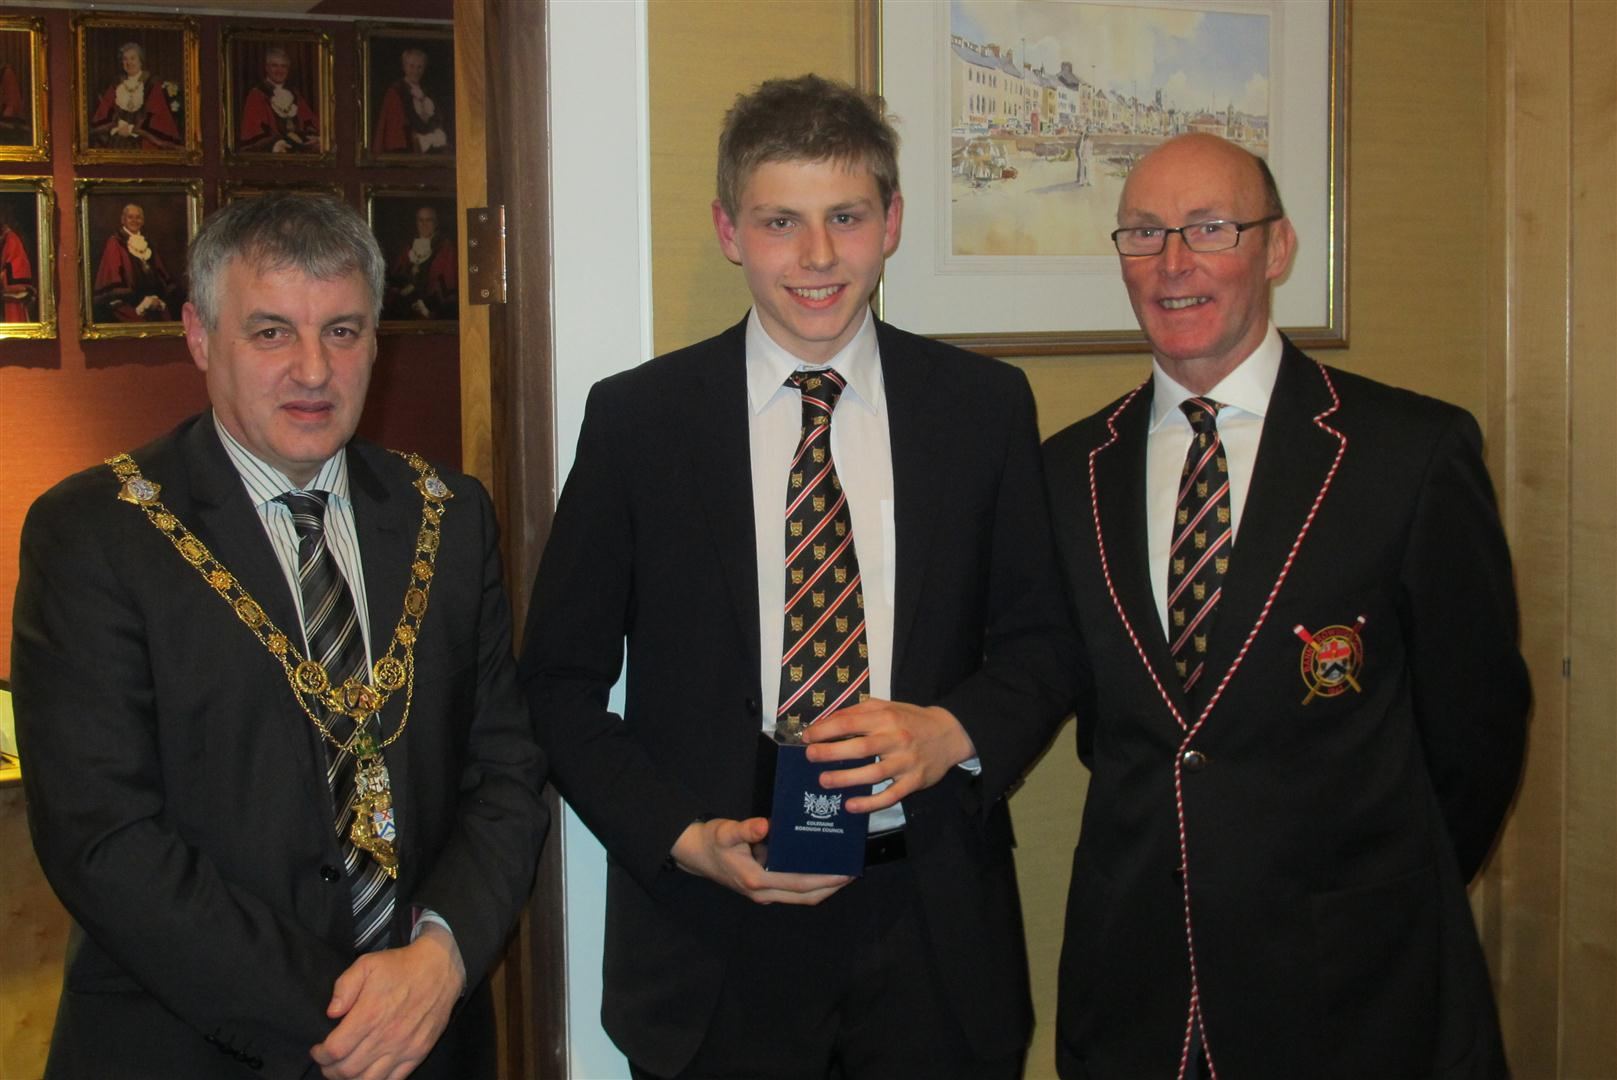 The Mayor, Club Captain and Chris